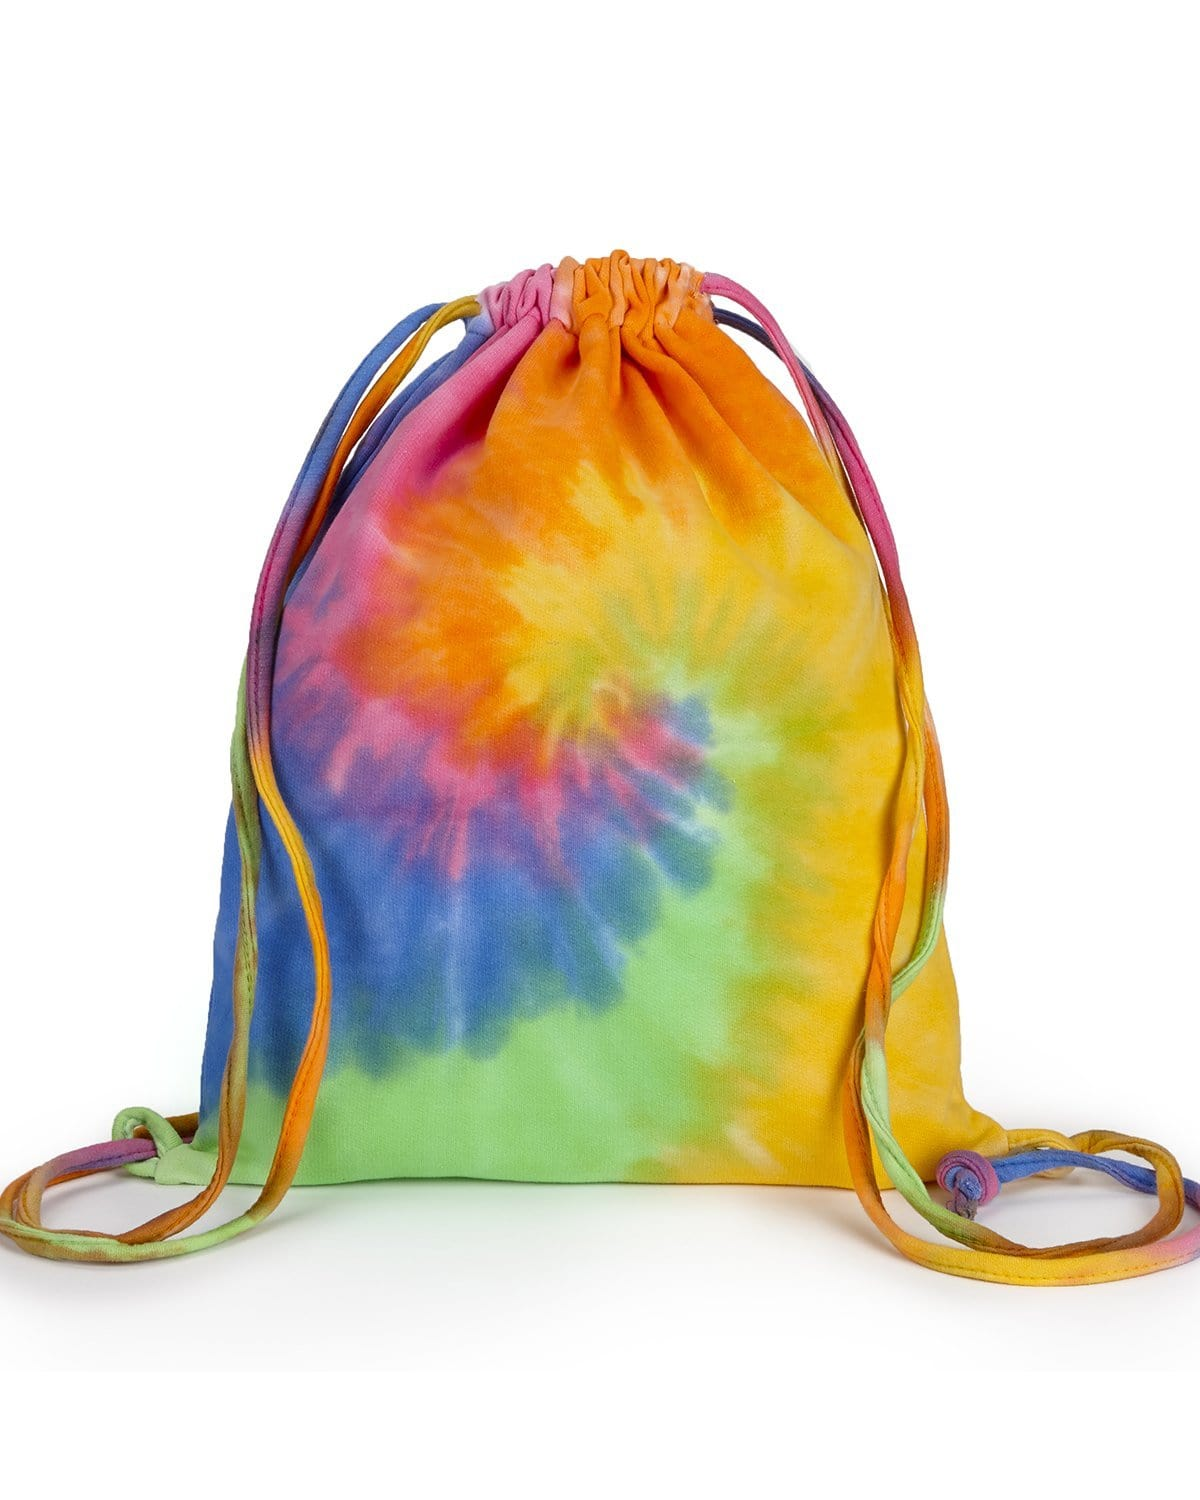 Monogram Tie Dye Backpack